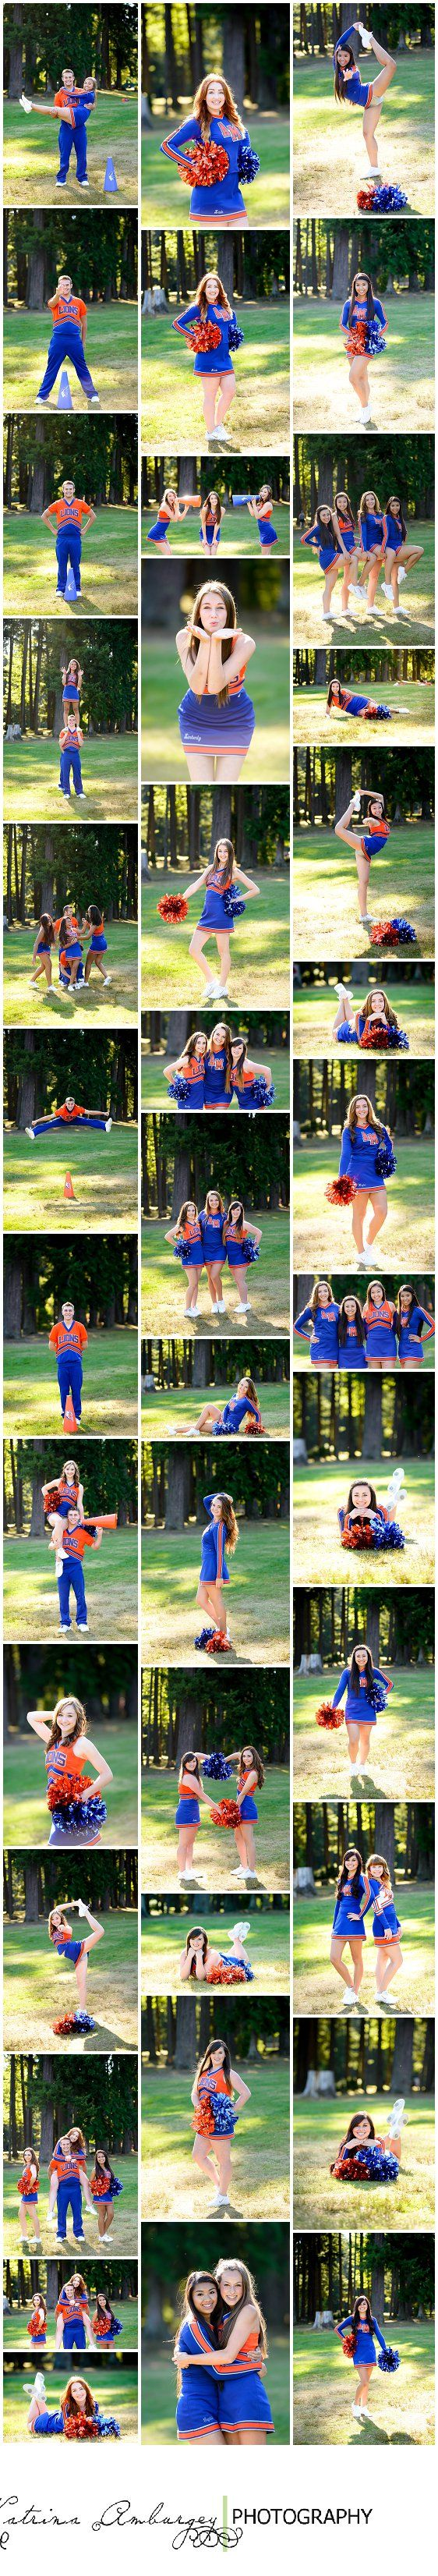 Auburn Mountainview Cheerleaders { Auburn Senior Photographer } » kamburgeyphotography.com